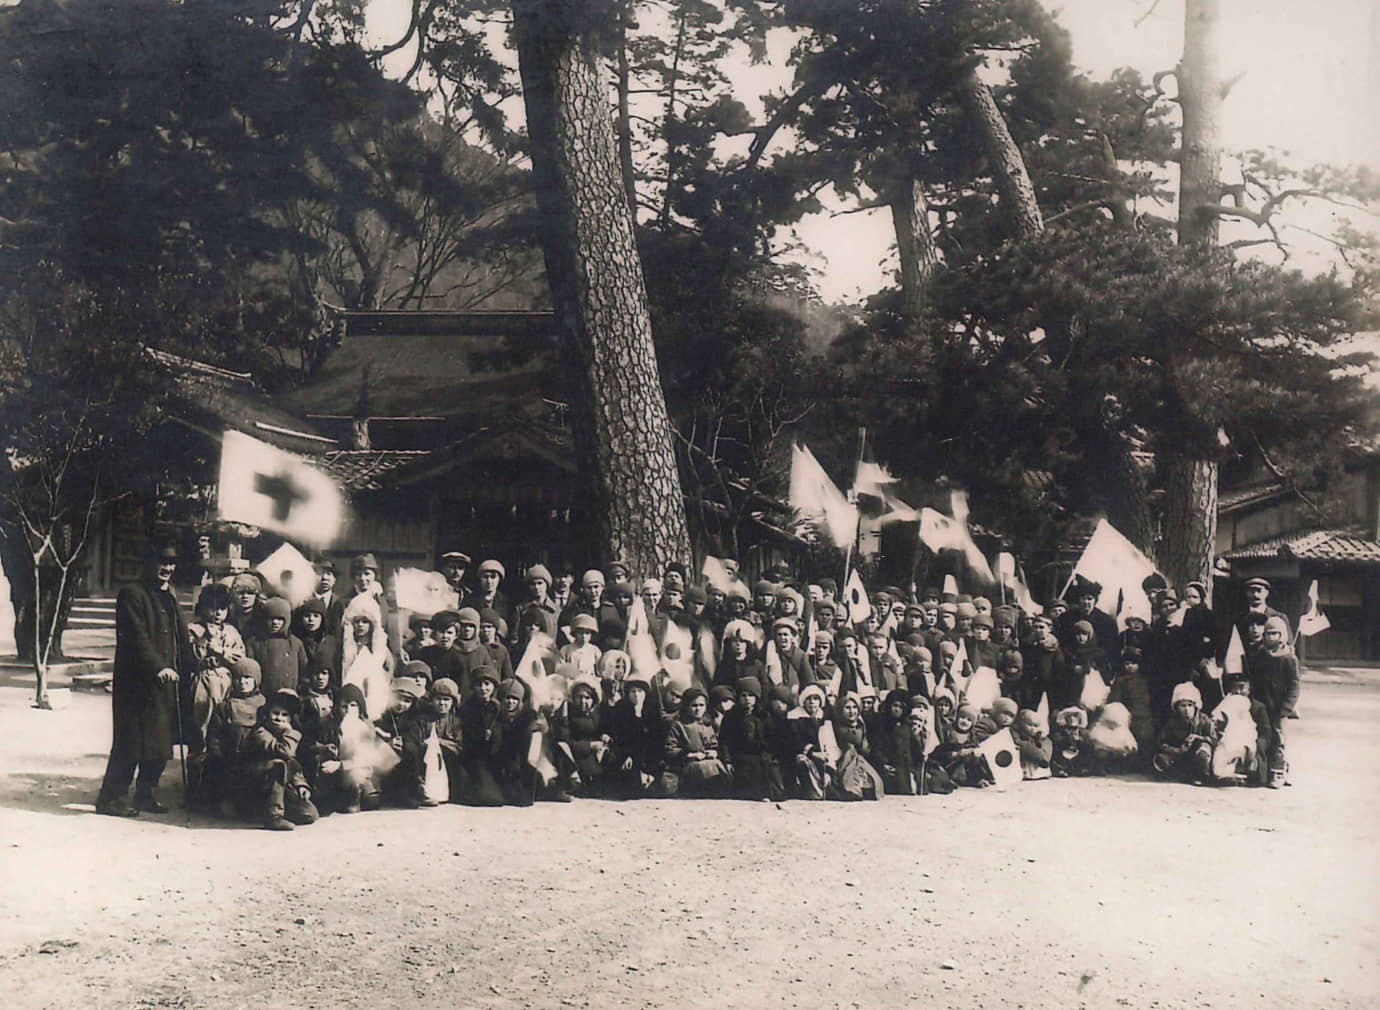 Polish orphans displaced by the Russian Revolution (1917 to 1923). Tsuruga welcomed a total of over 750 rescued children during 1920 and 1922. | TSURUGA CITY